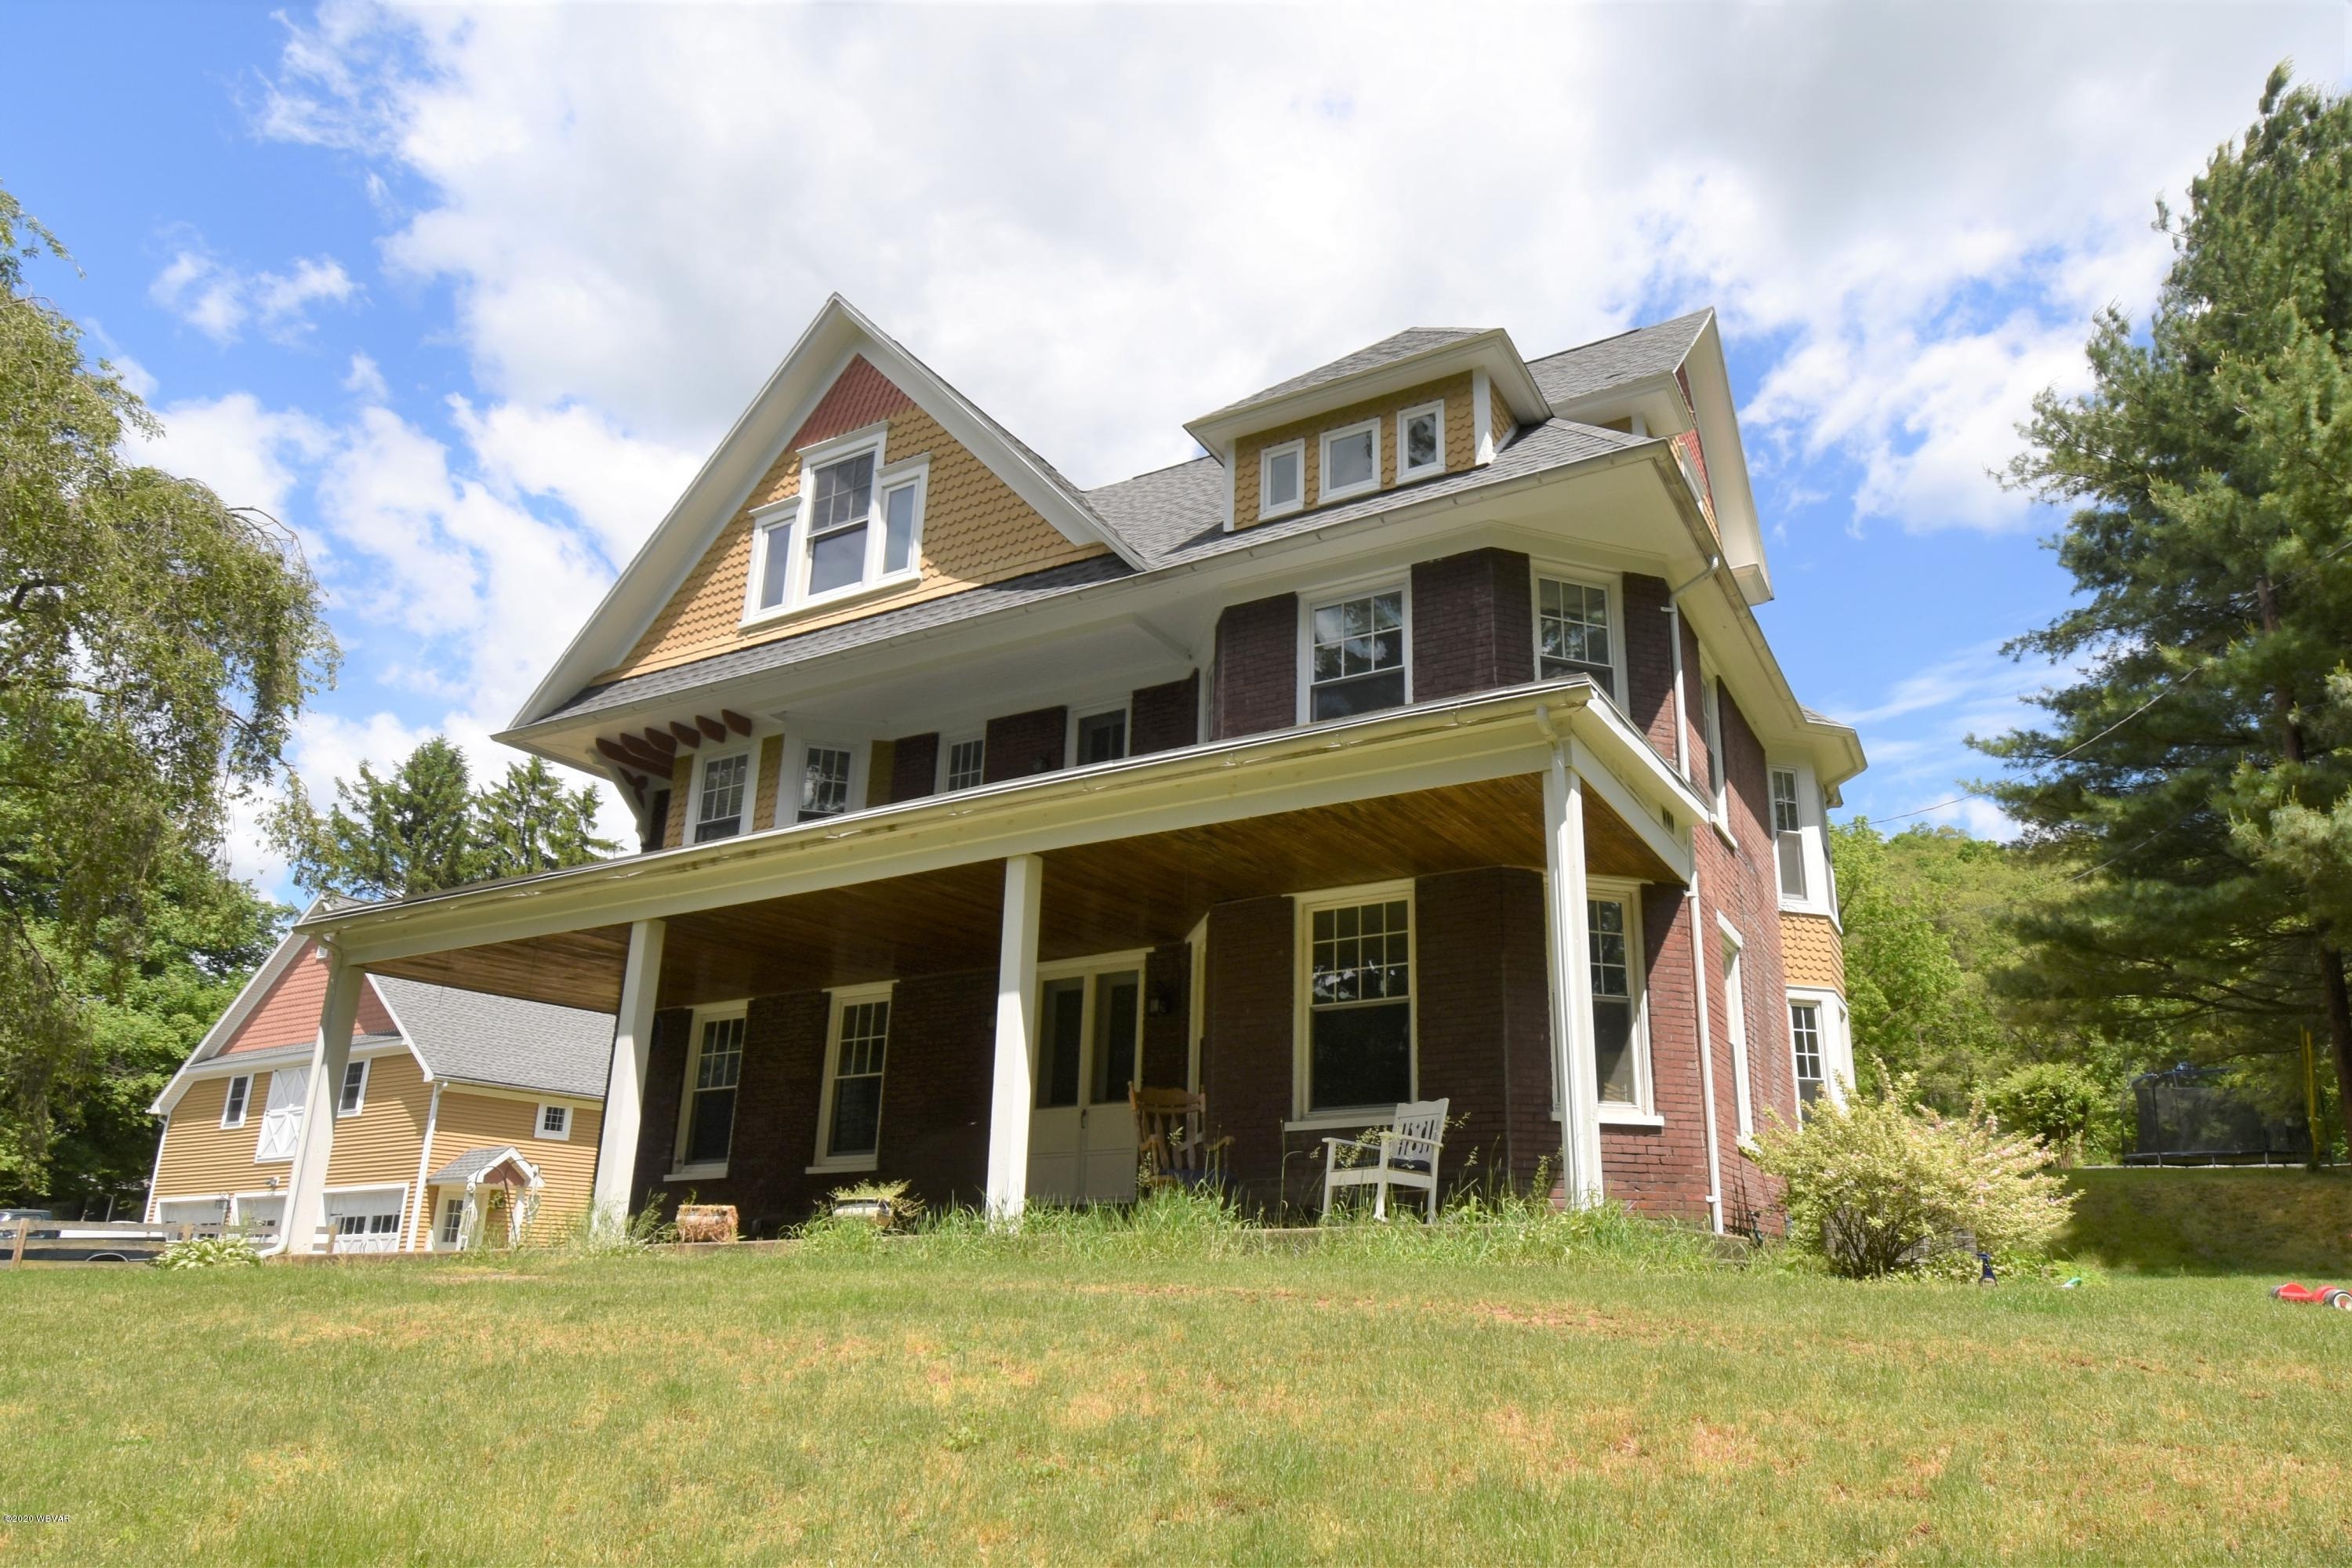 28 UPPERHILL DRIVE, Lock Haven, PA 17745, 5 Bedrooms Bedrooms, ,3 BathroomsBathrooms,Residential,For sale,UPPERHILL,WB-90204